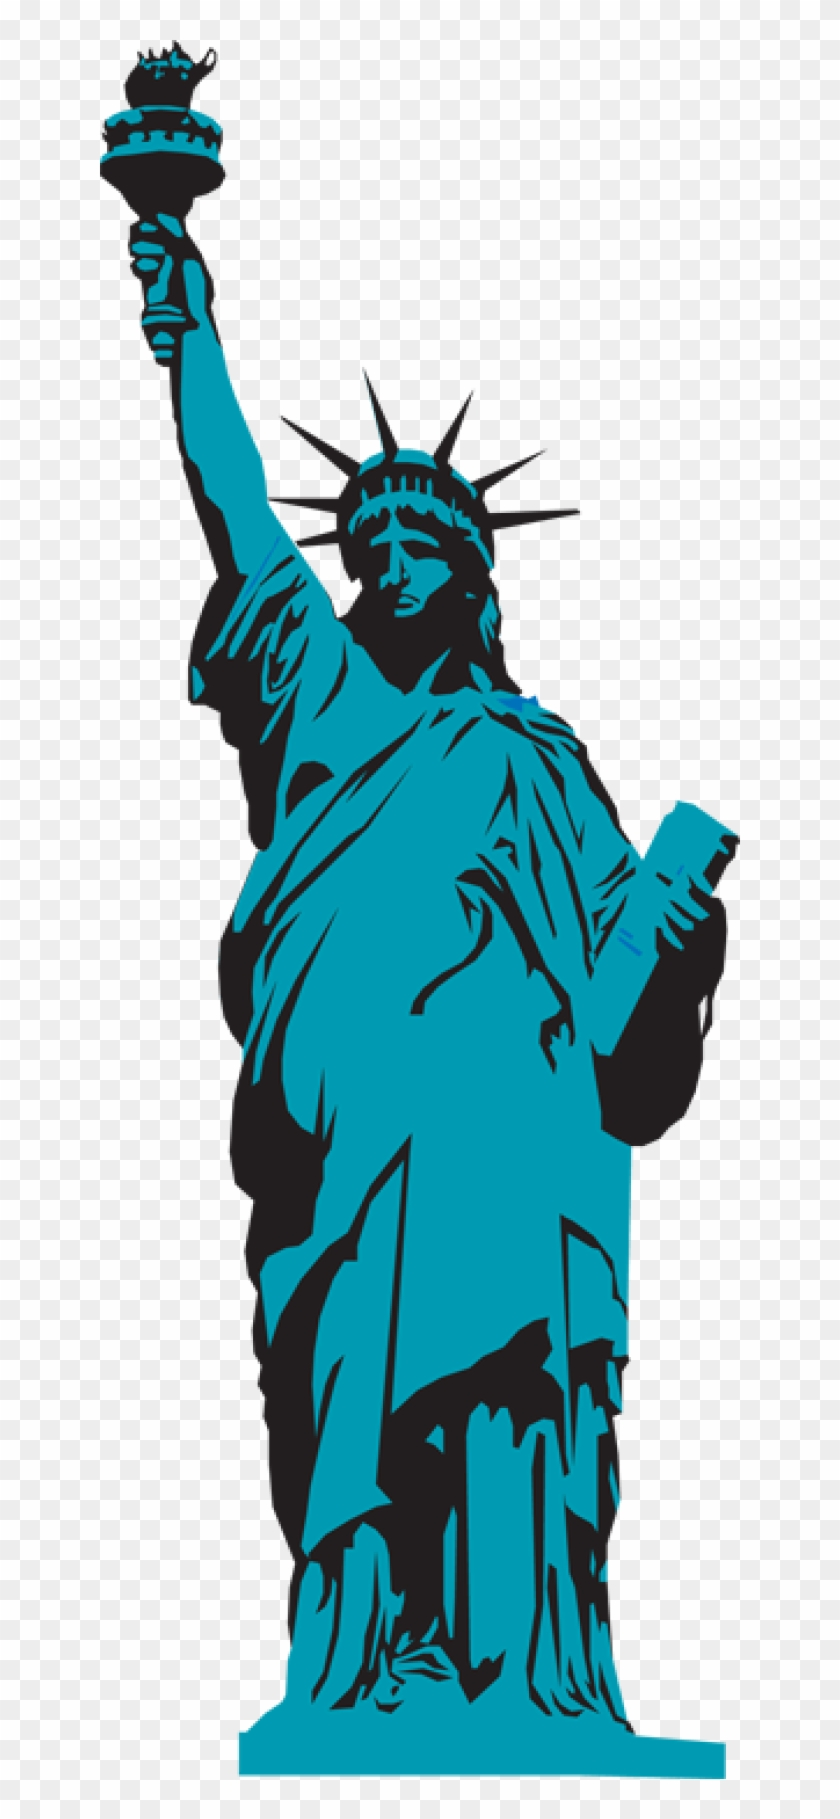 Clipart Statue Of Liberty Many Interesting Cliparts - Statue Of Liberty #107784